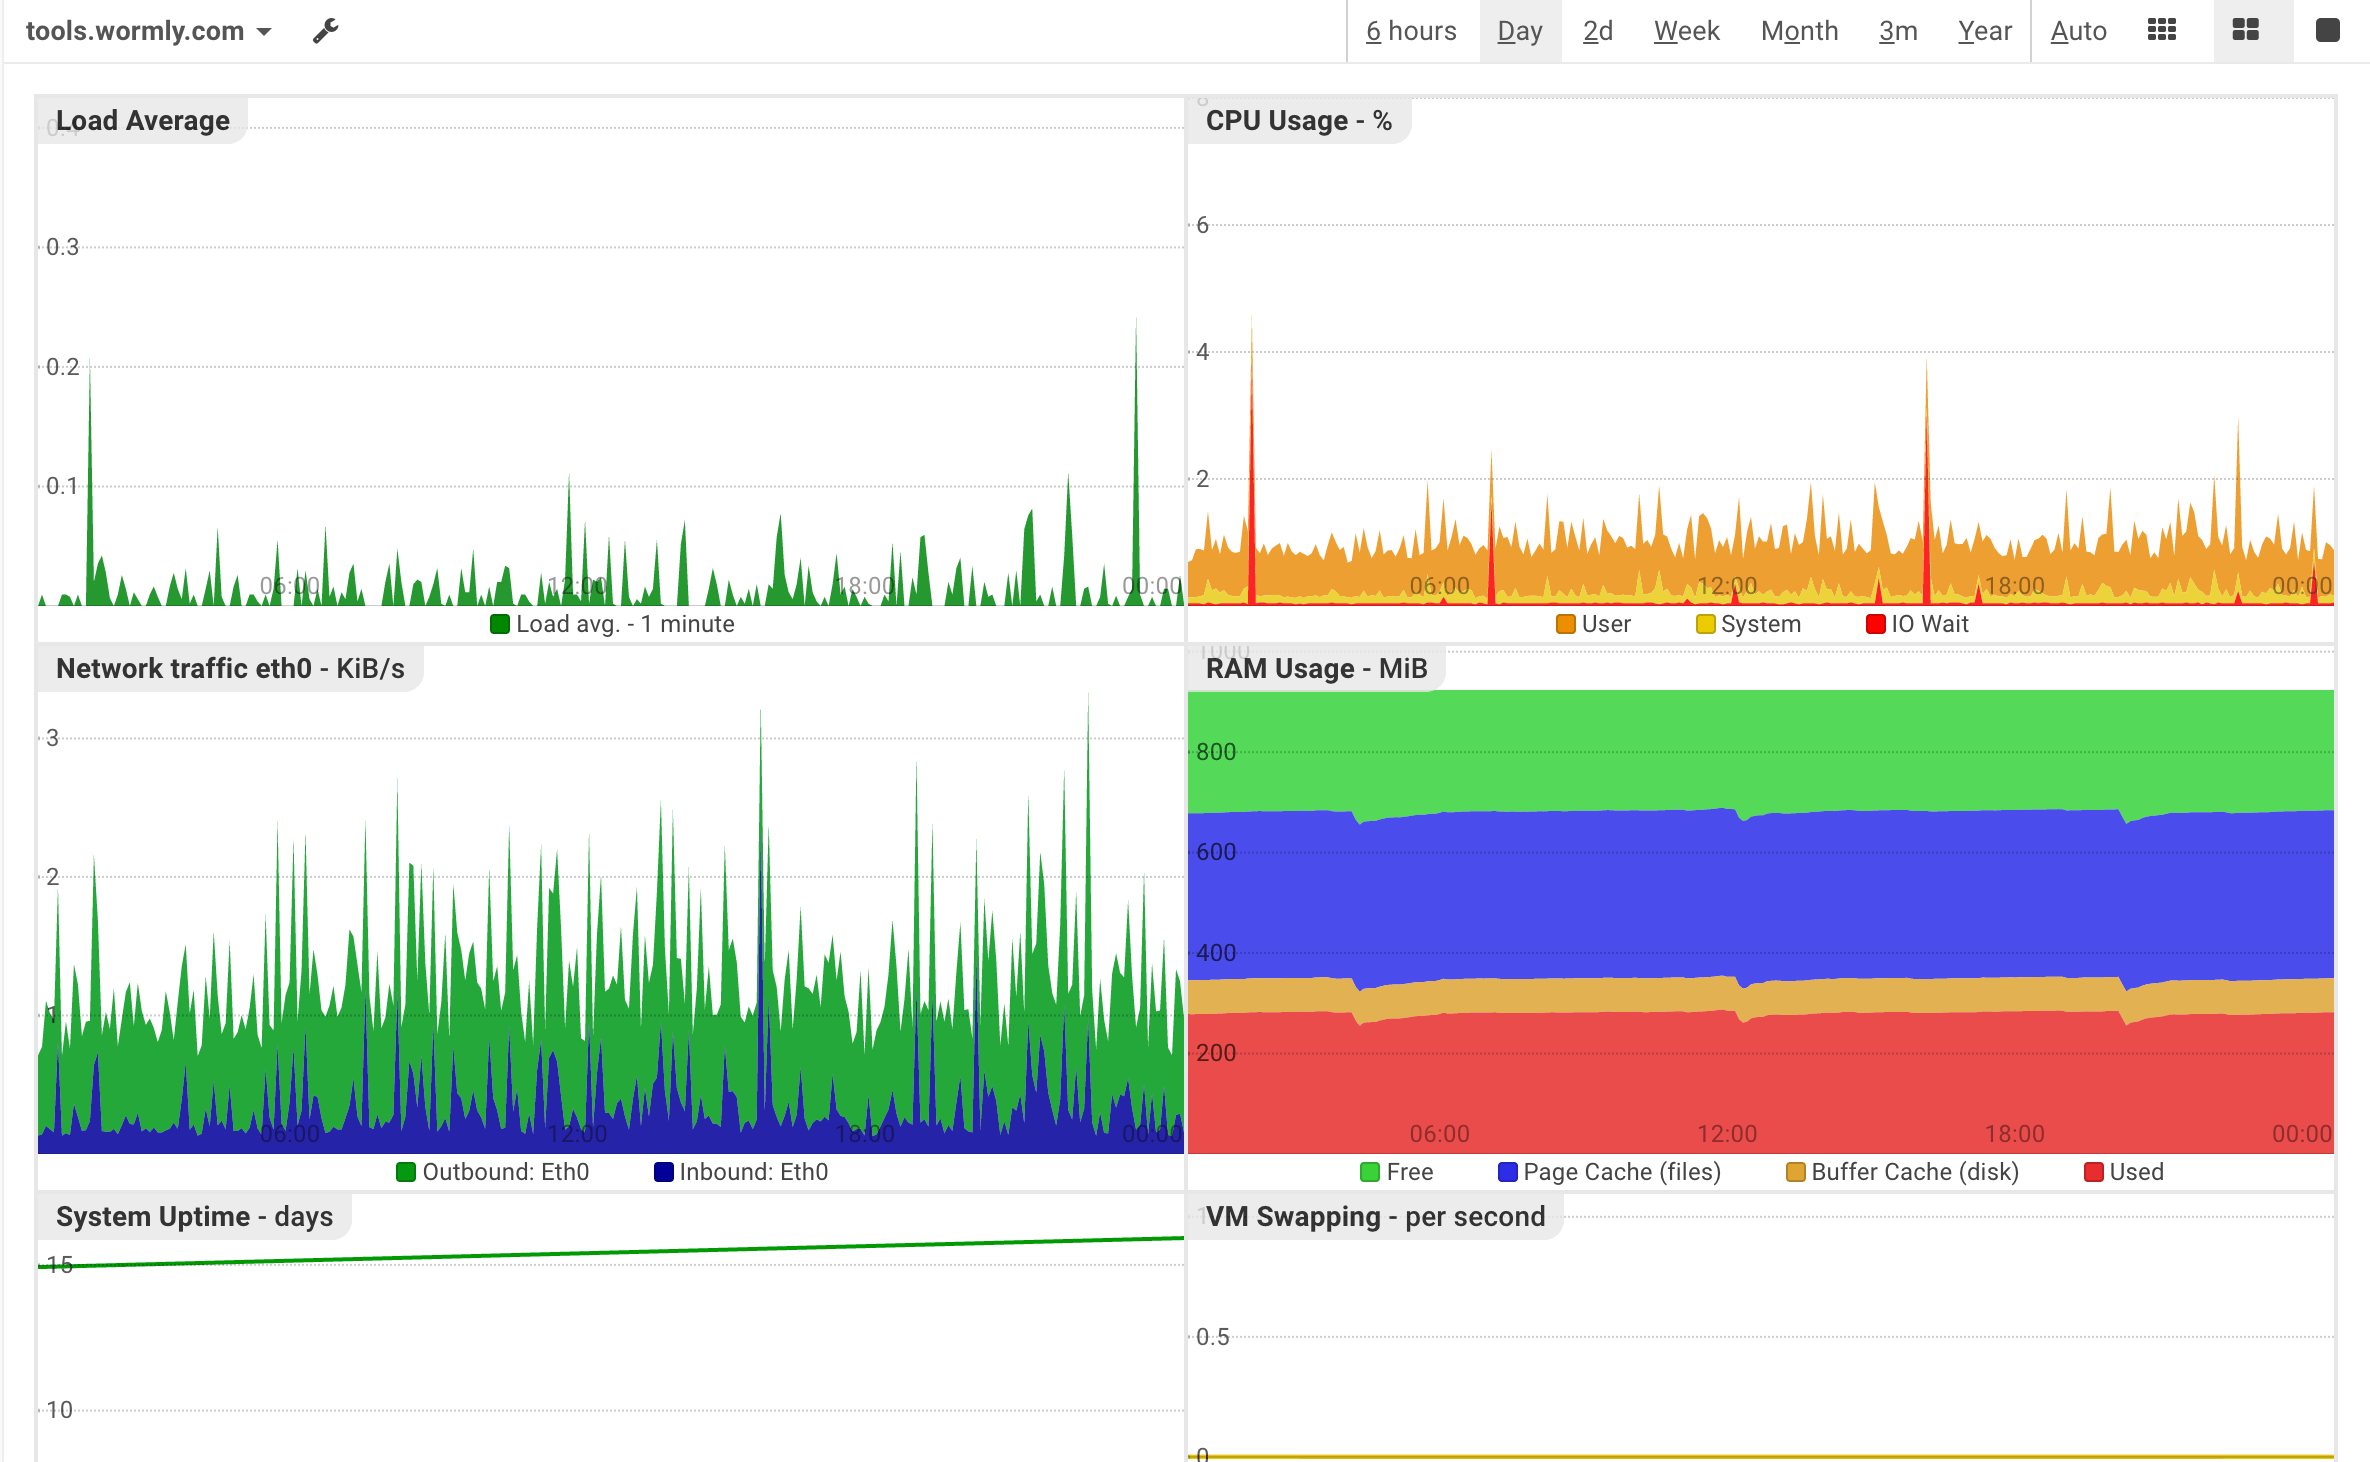 Daily uptime report